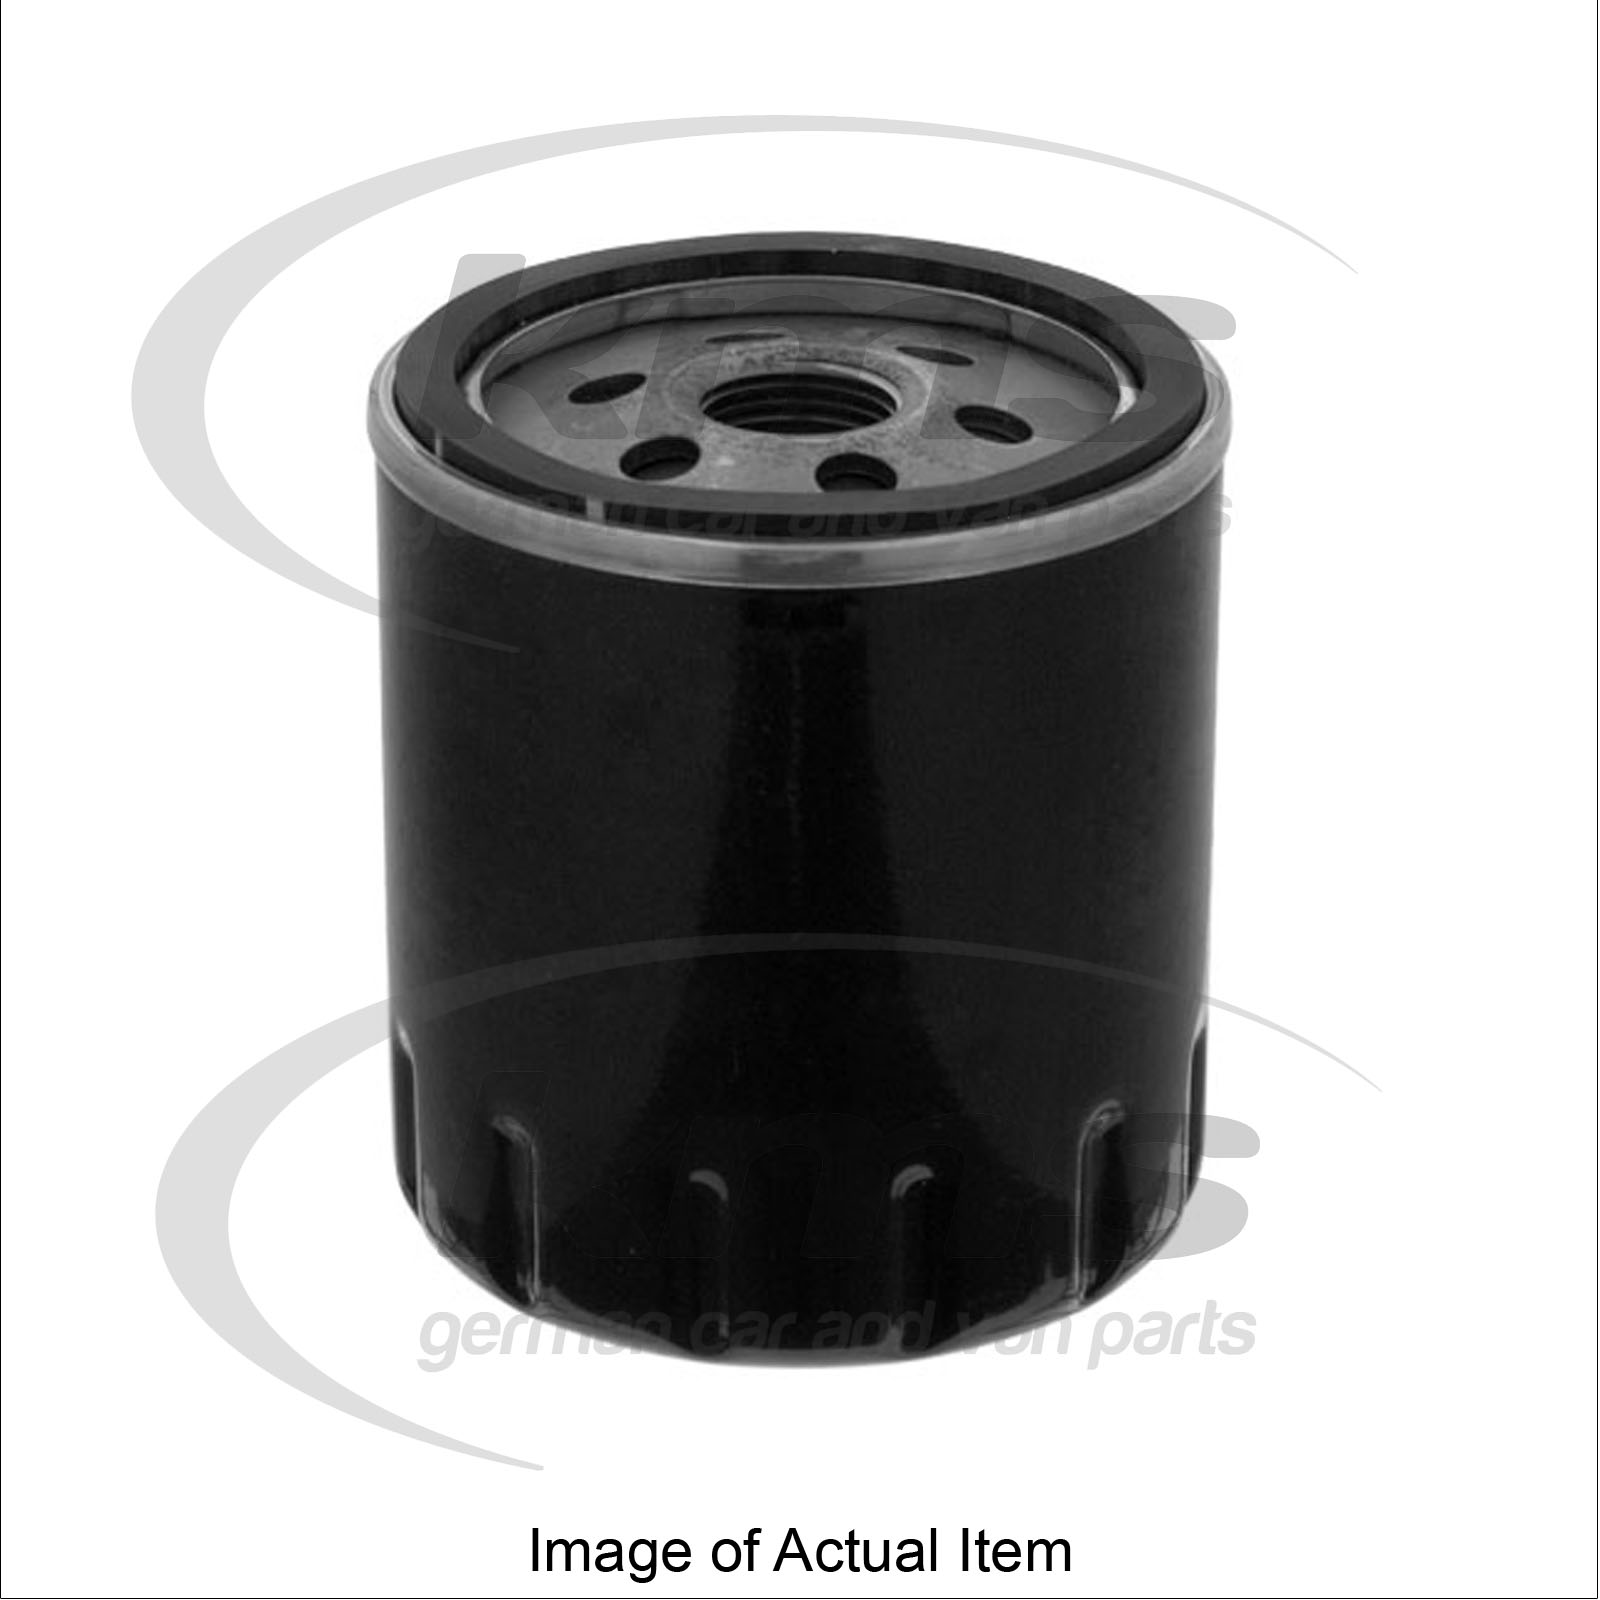 Oil filter mercedes benz 300 series saloon 300e w124 3 0l for Mercedes benz oil